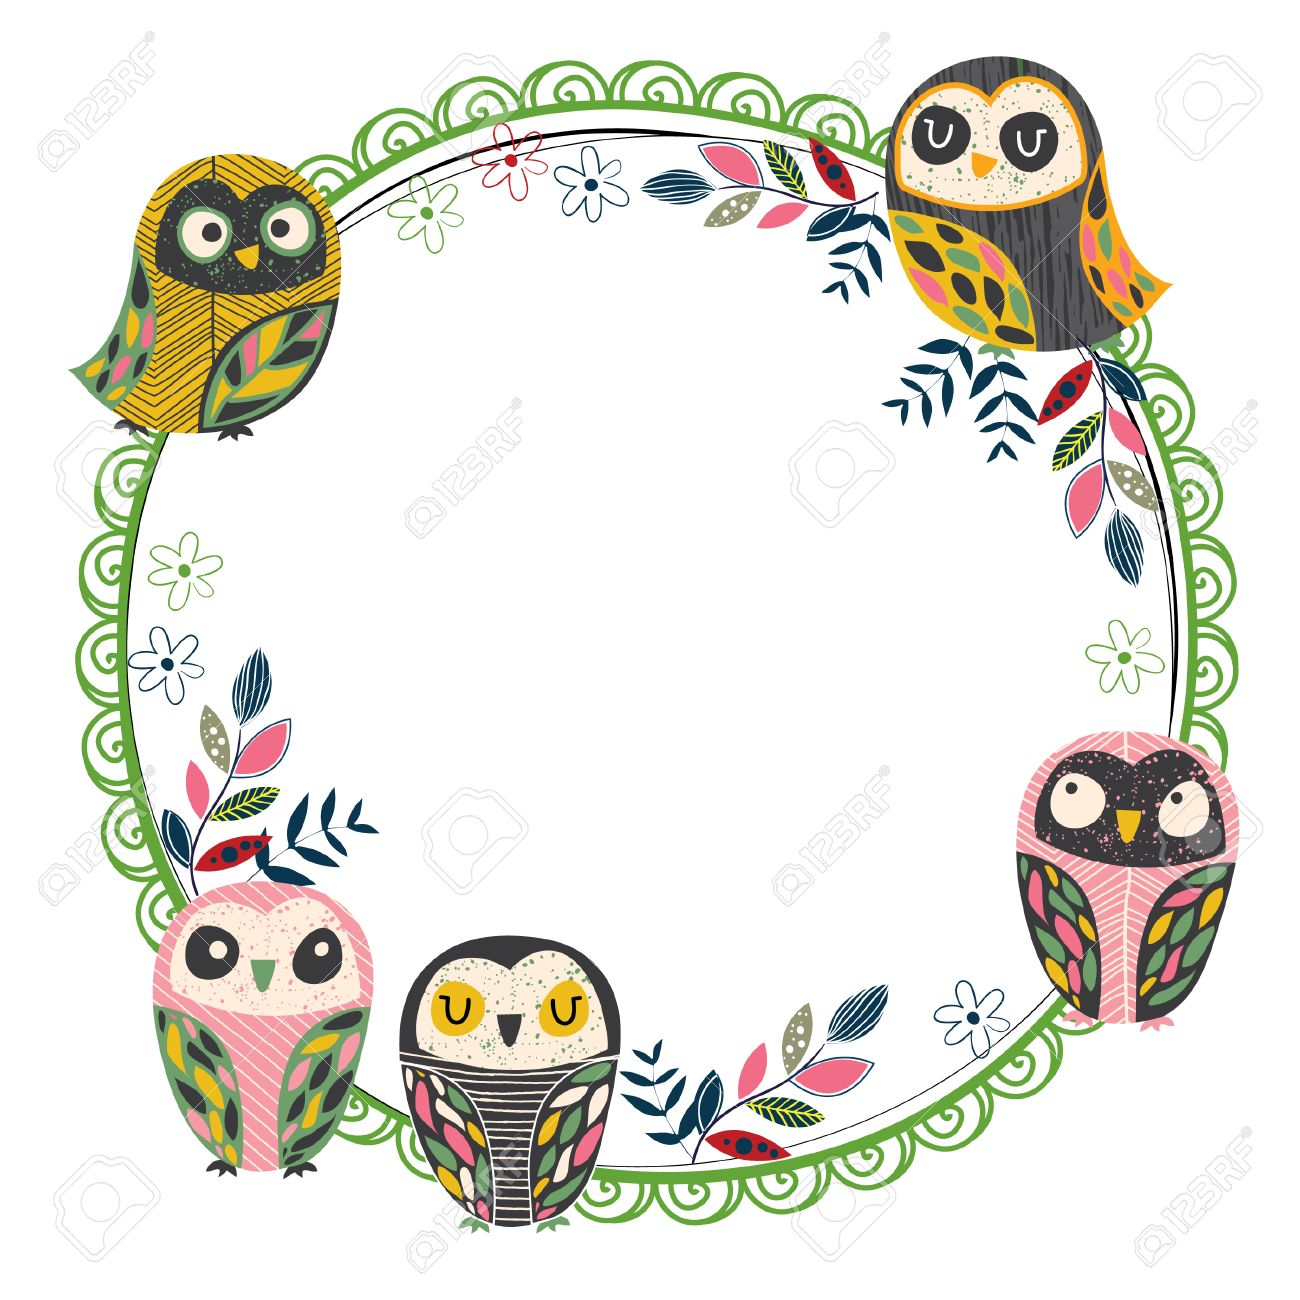 vintage owl frame layout  royalty free cliparts vectors and  - vector  vintage owl frame layout